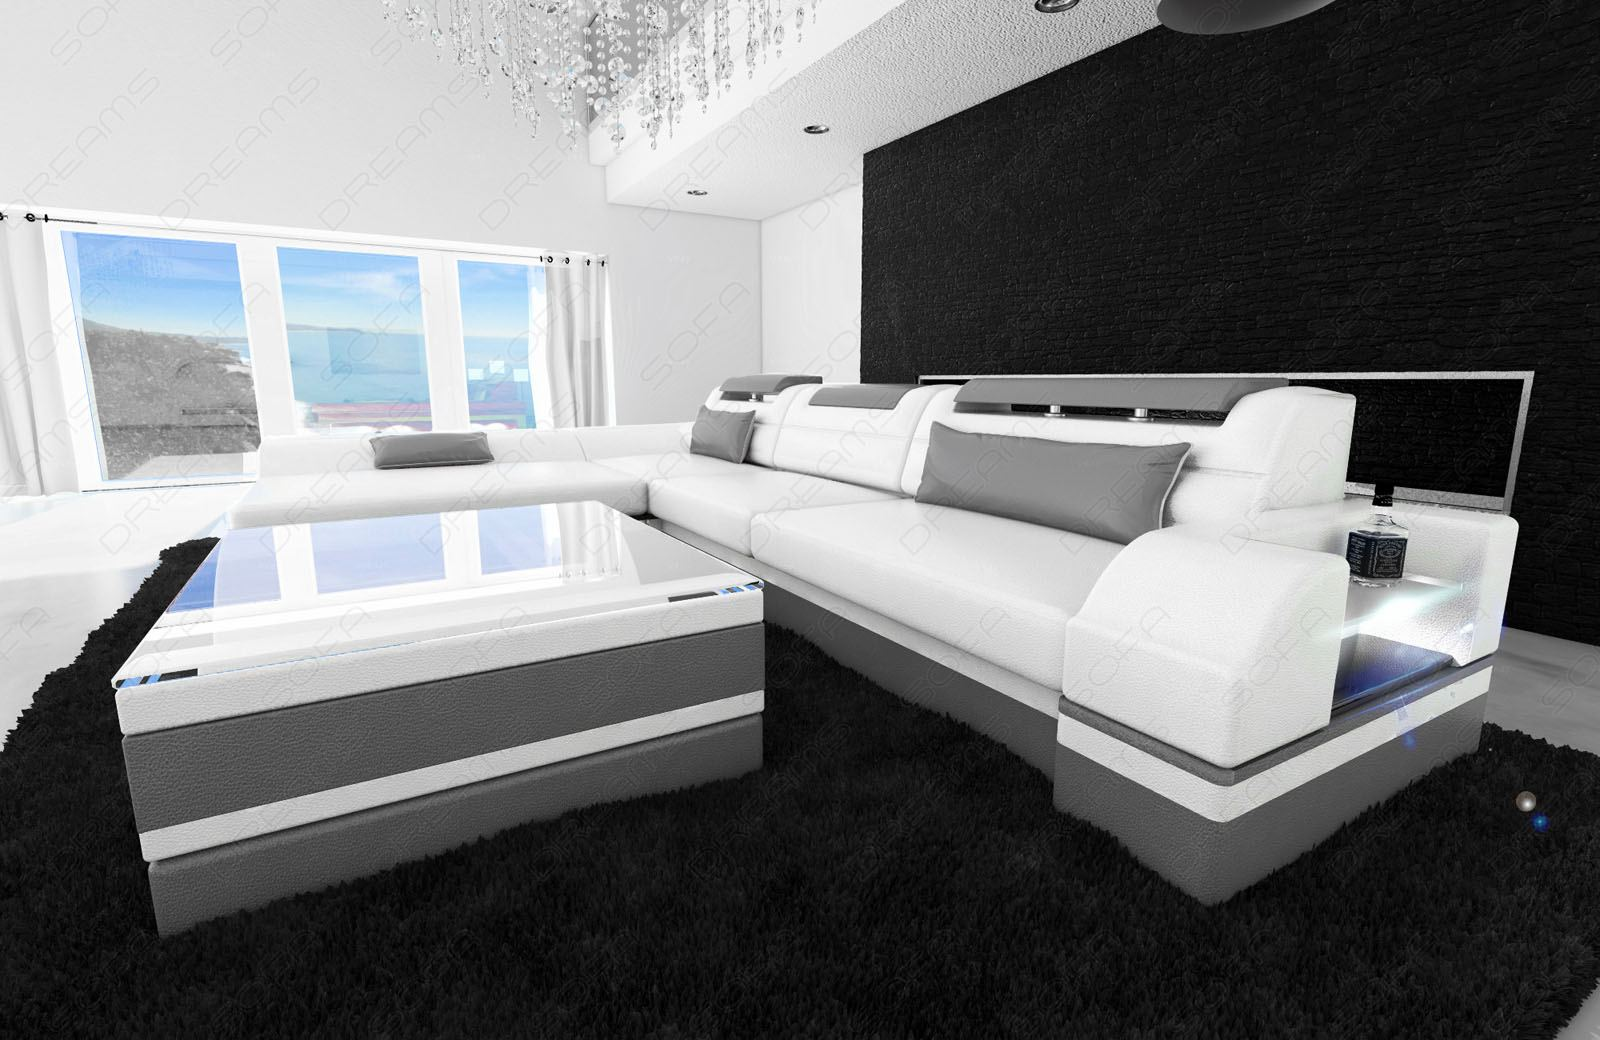 ledersofa monza l form designersofa mit rgb led beleuchtung ebay. Black Bedroom Furniture Sets. Home Design Ideas